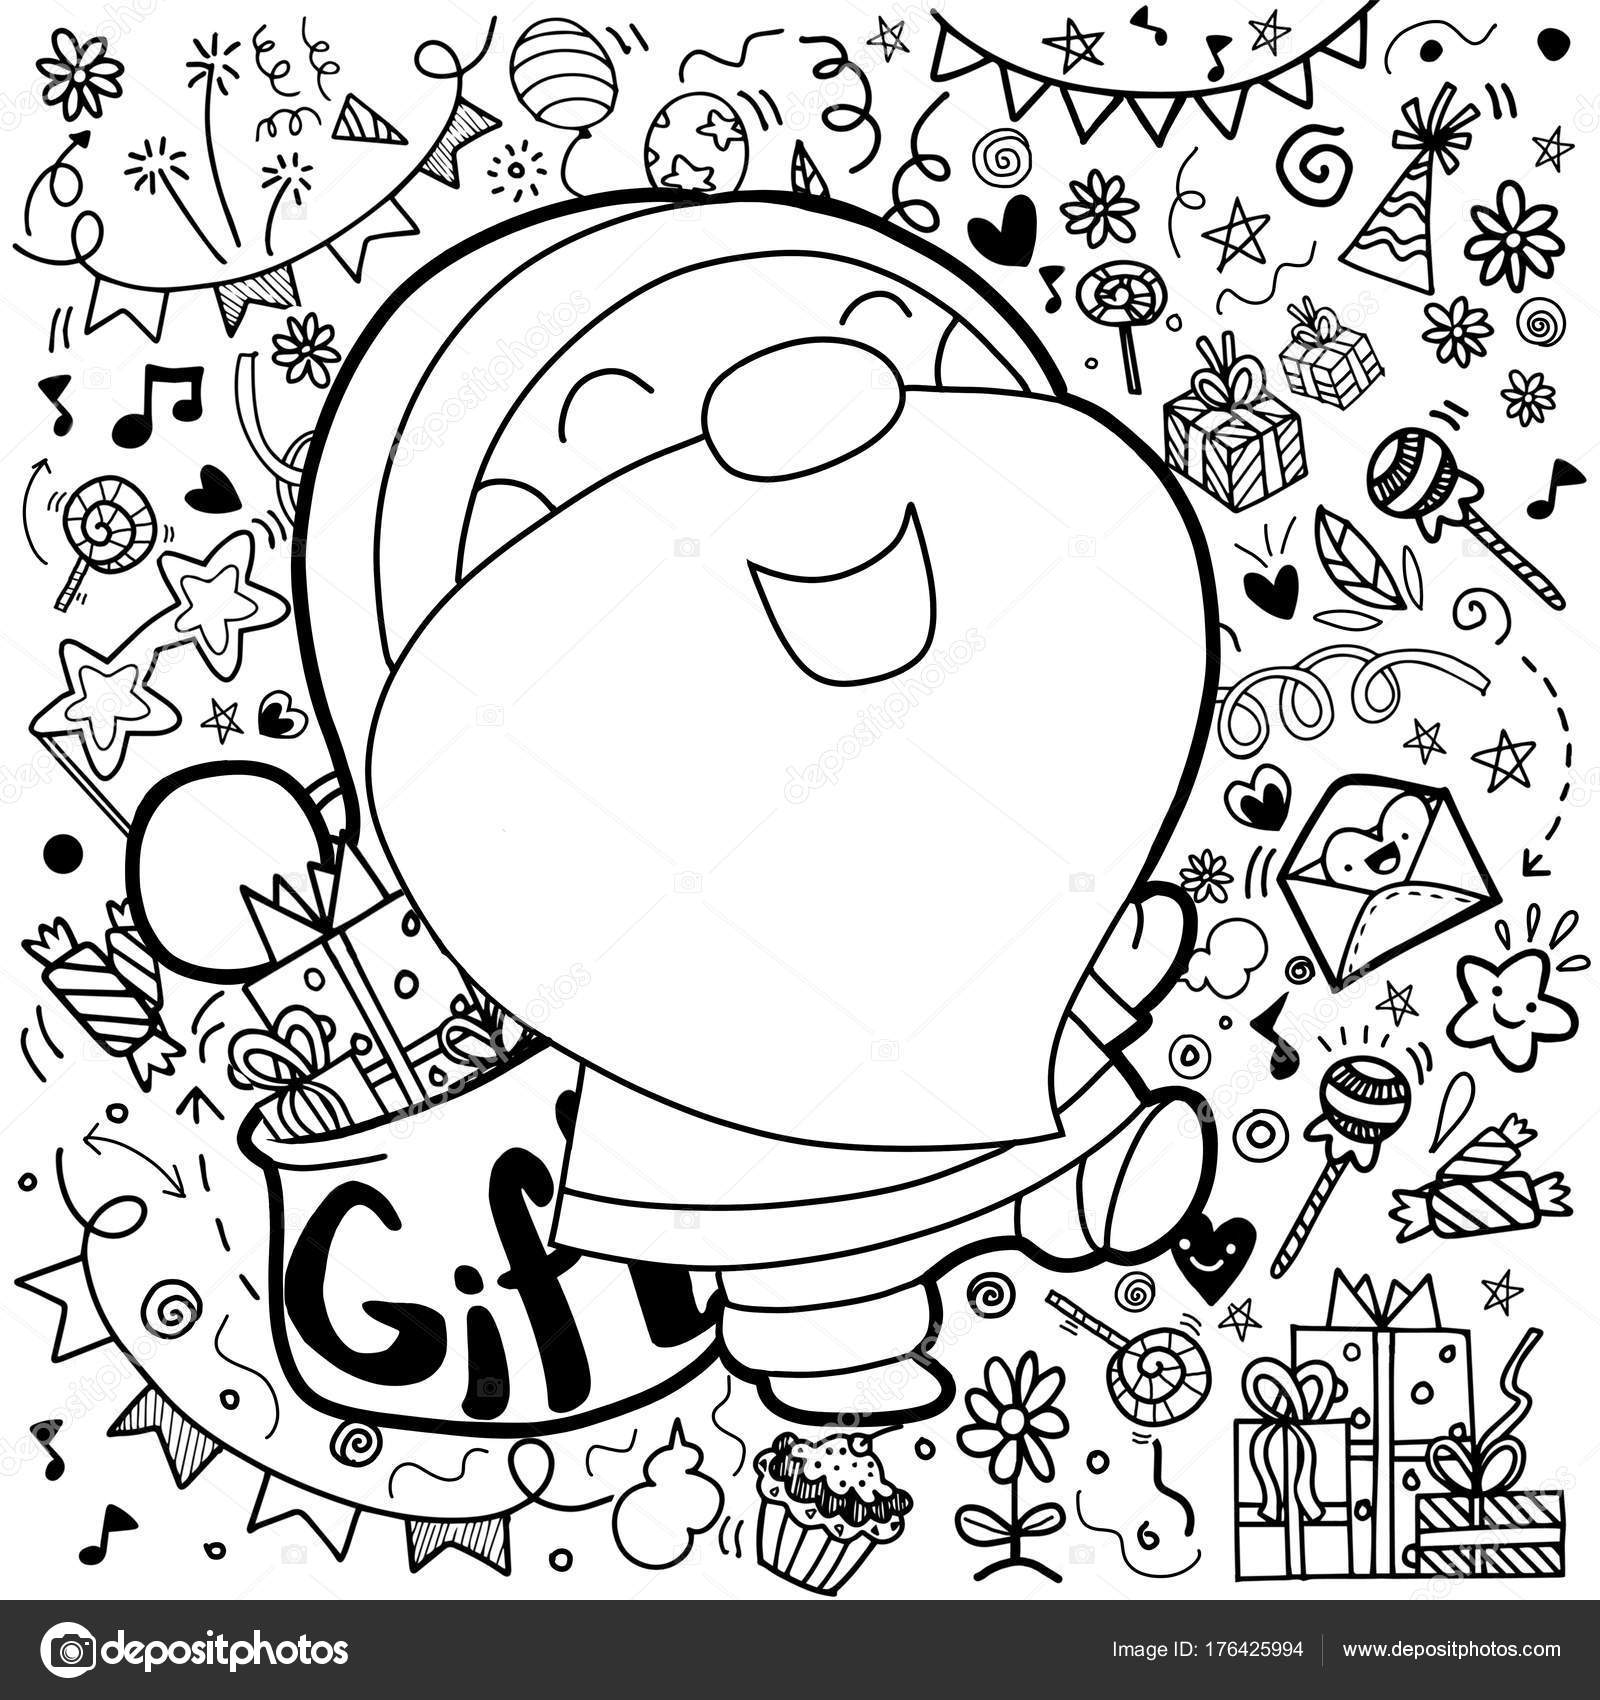 cute cartoon funny kawaii character with christmas decorations background greeting cardmerry christmas happy new year pattern for adult coloring book